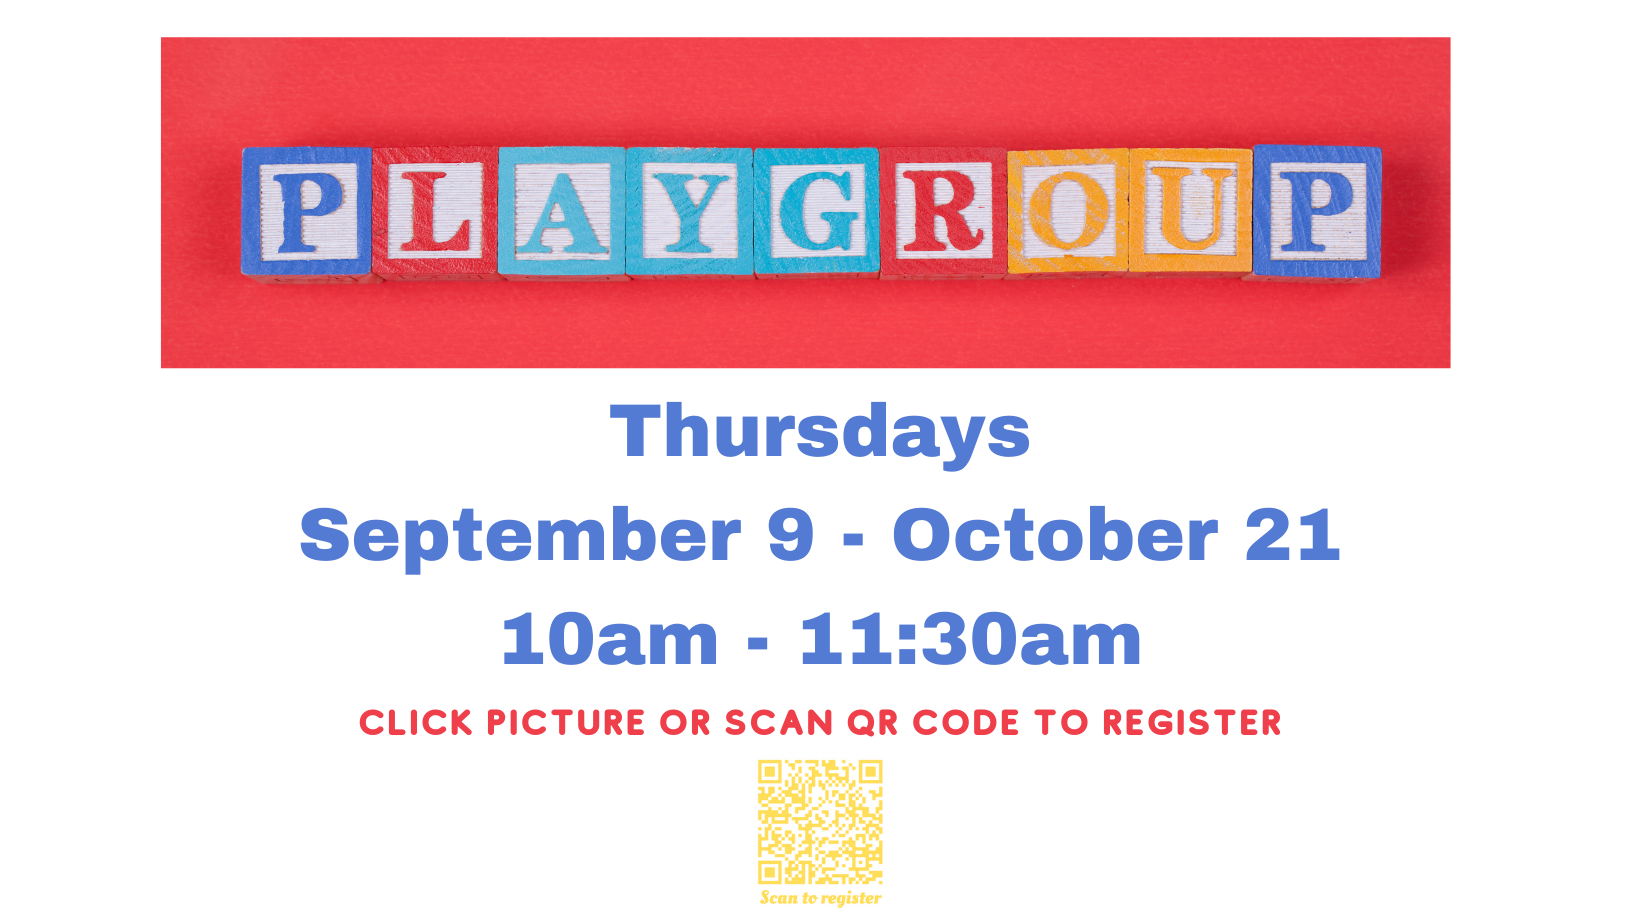 CAROUSEL PLAY GROUP 9.9.21-10.21.21.png